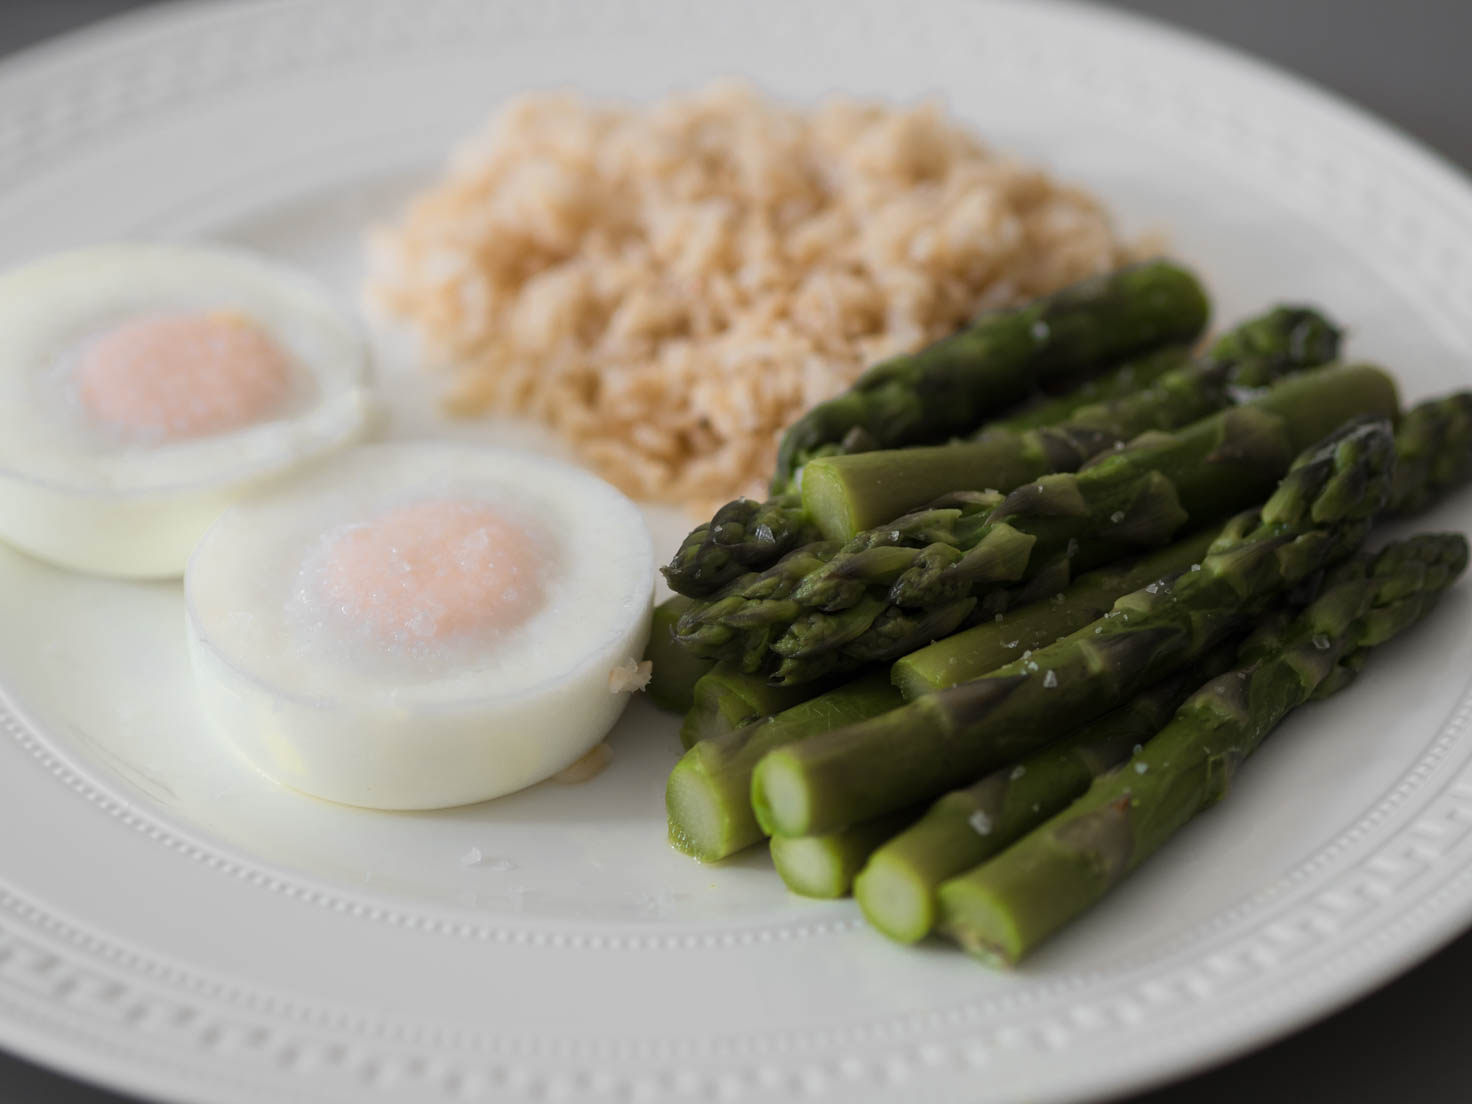 Poached eggs with asparagus and wholegrain rice